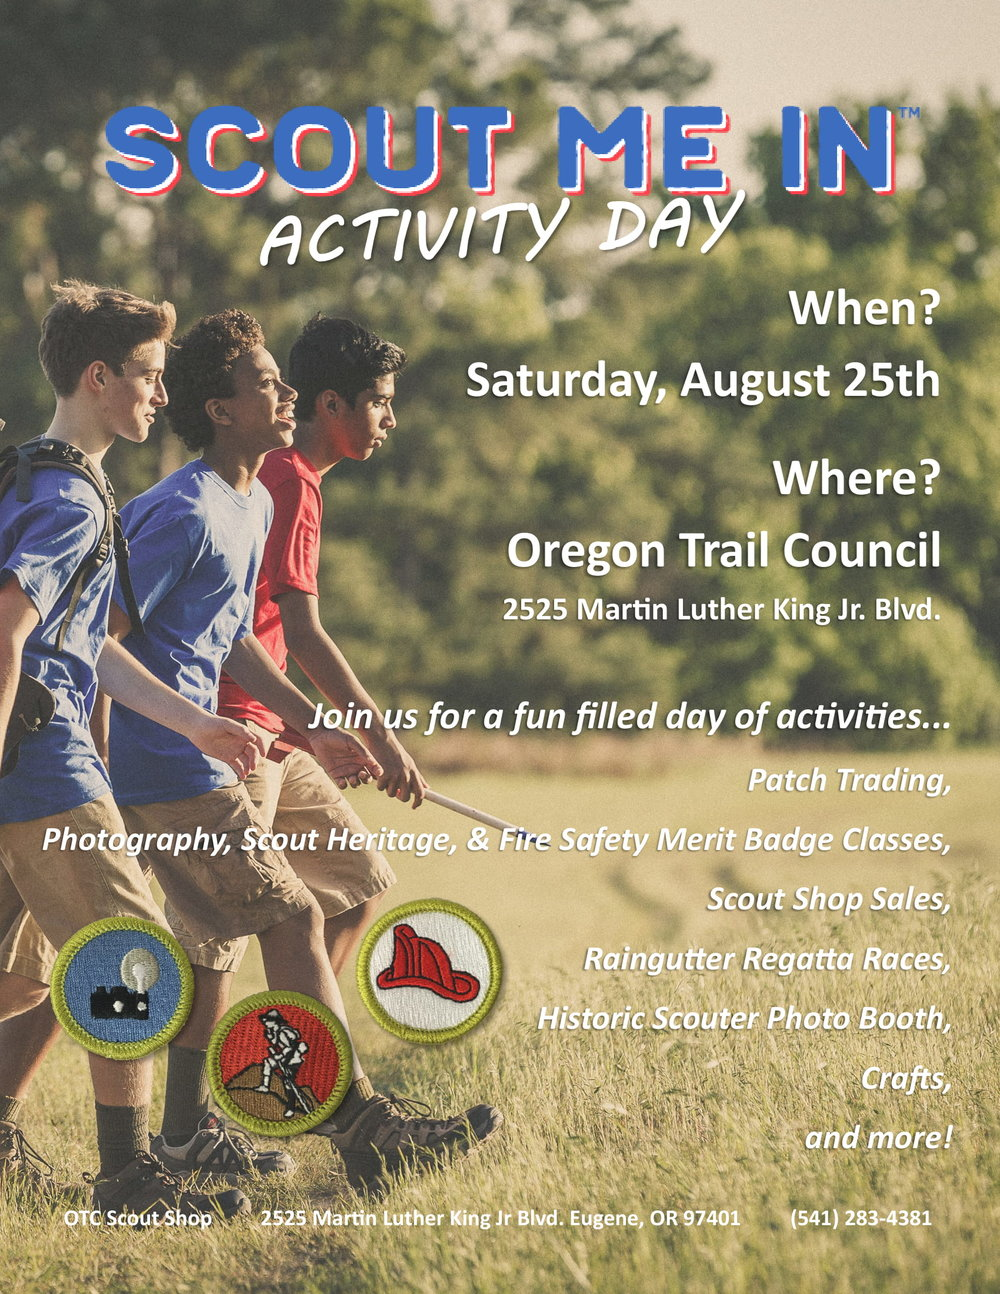 Scout Me In Activity Day Flyer-1.jpg